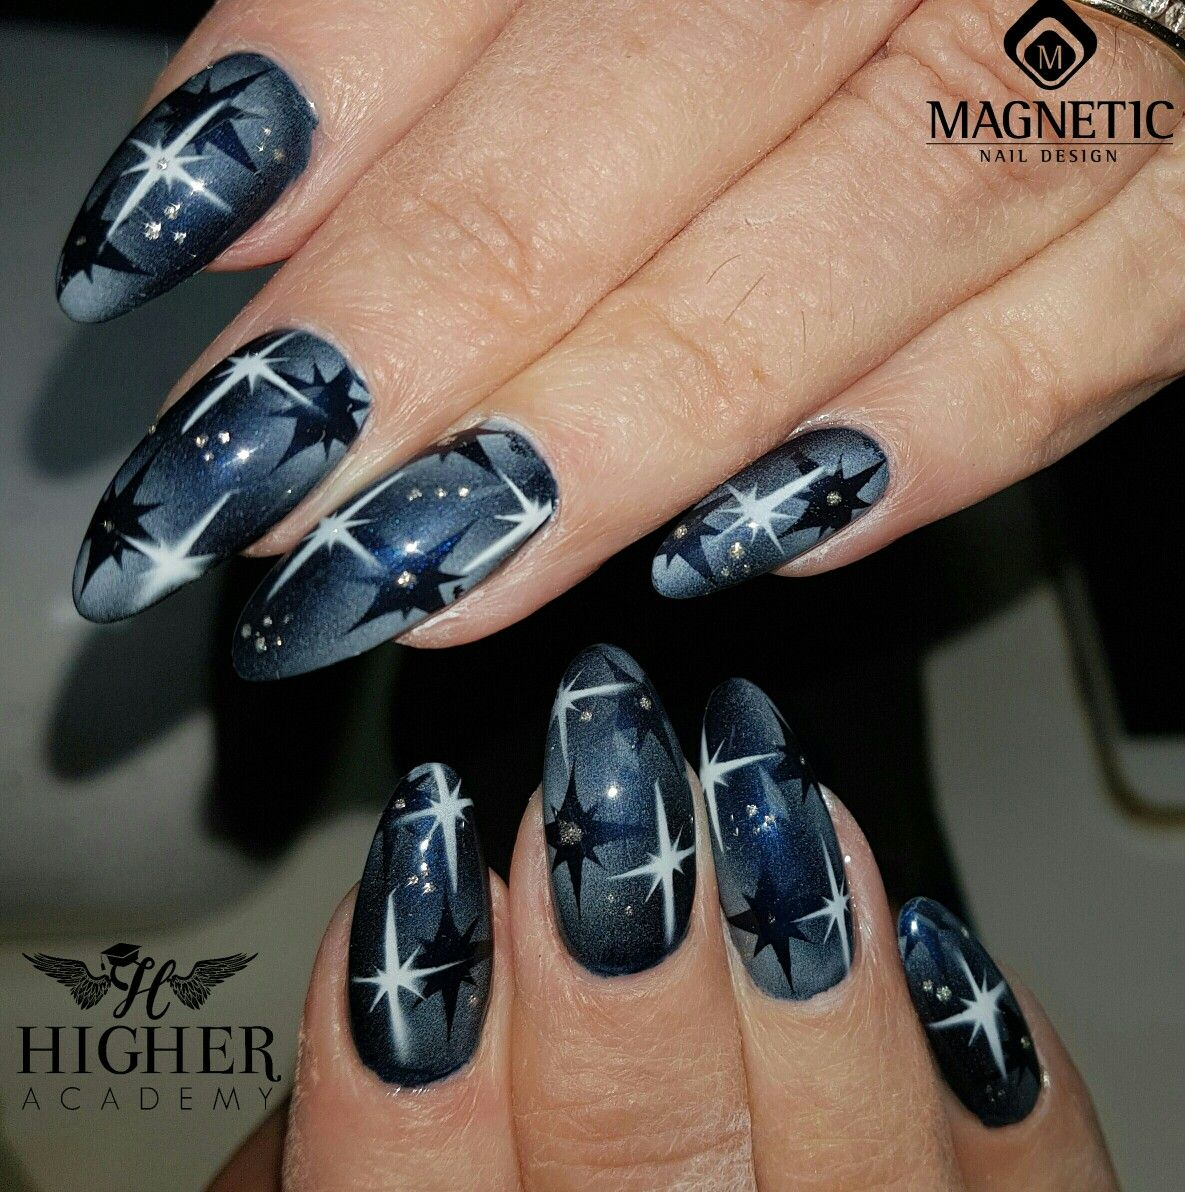 Ballroom Black Gel polish over Prestige Acrylic Opaque Pink Airnails ...